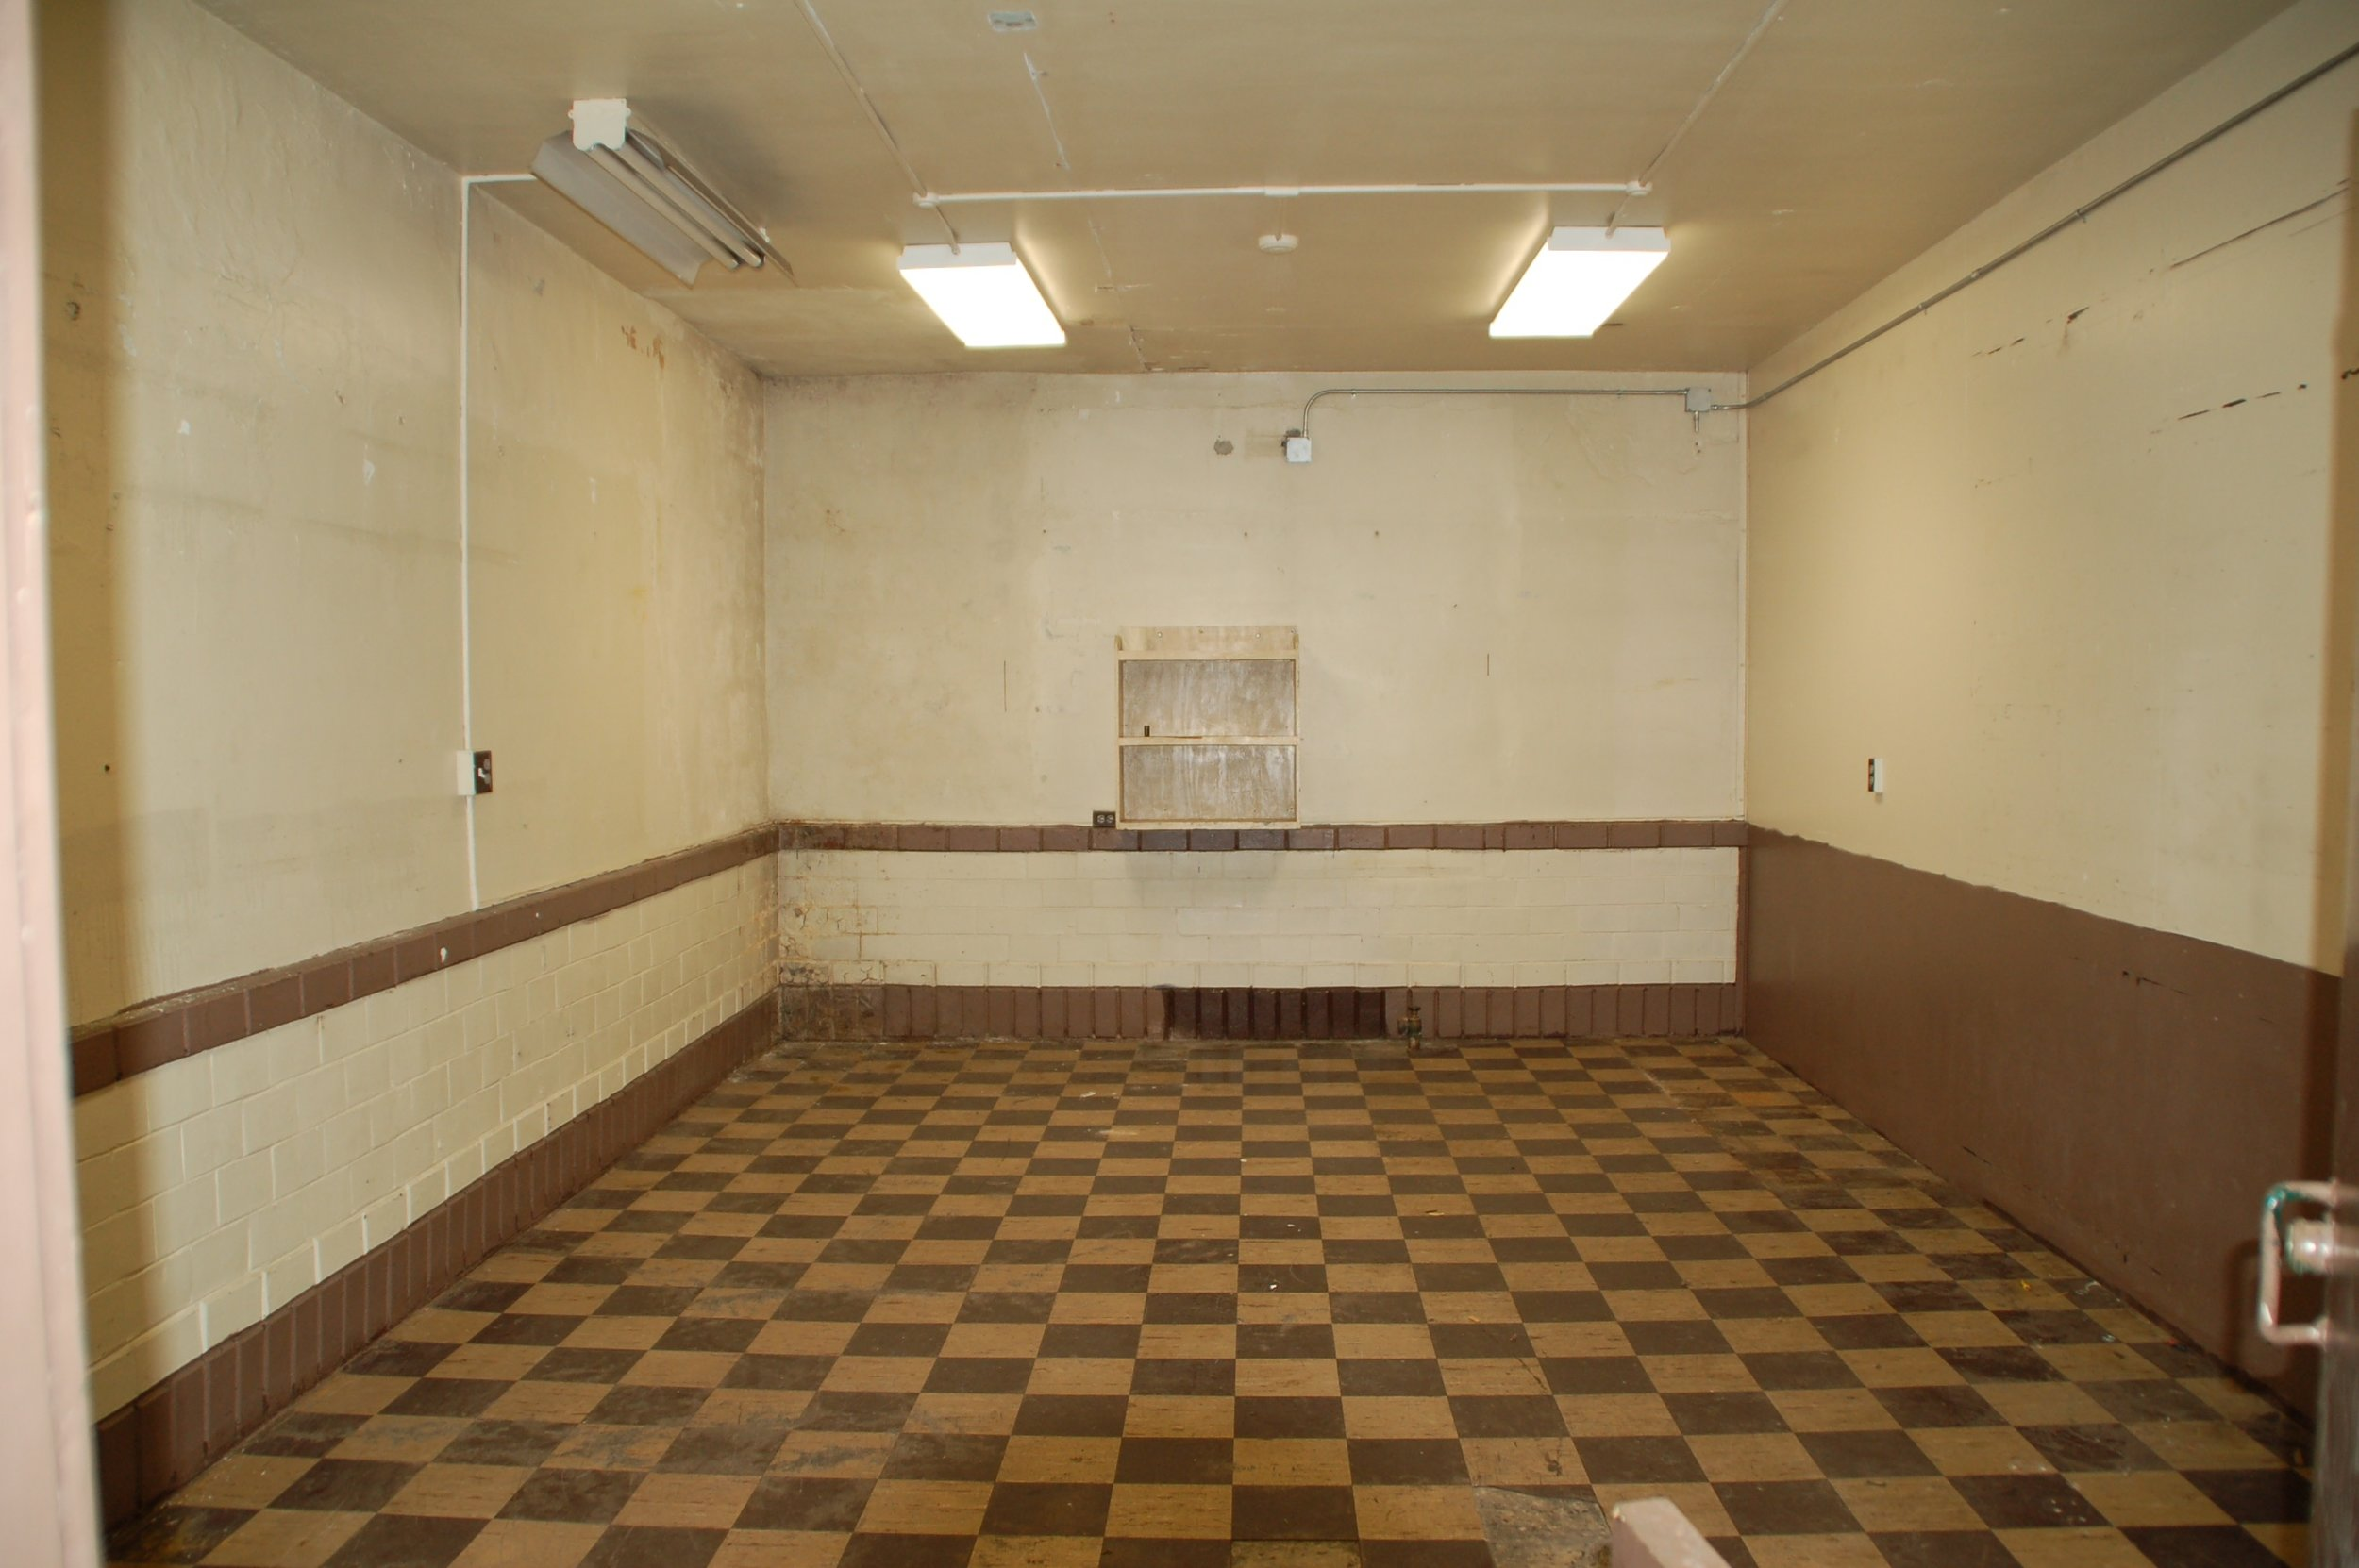 A wall will be taken out between this office and another to create a larger room for meetings and classroom-like instruction.